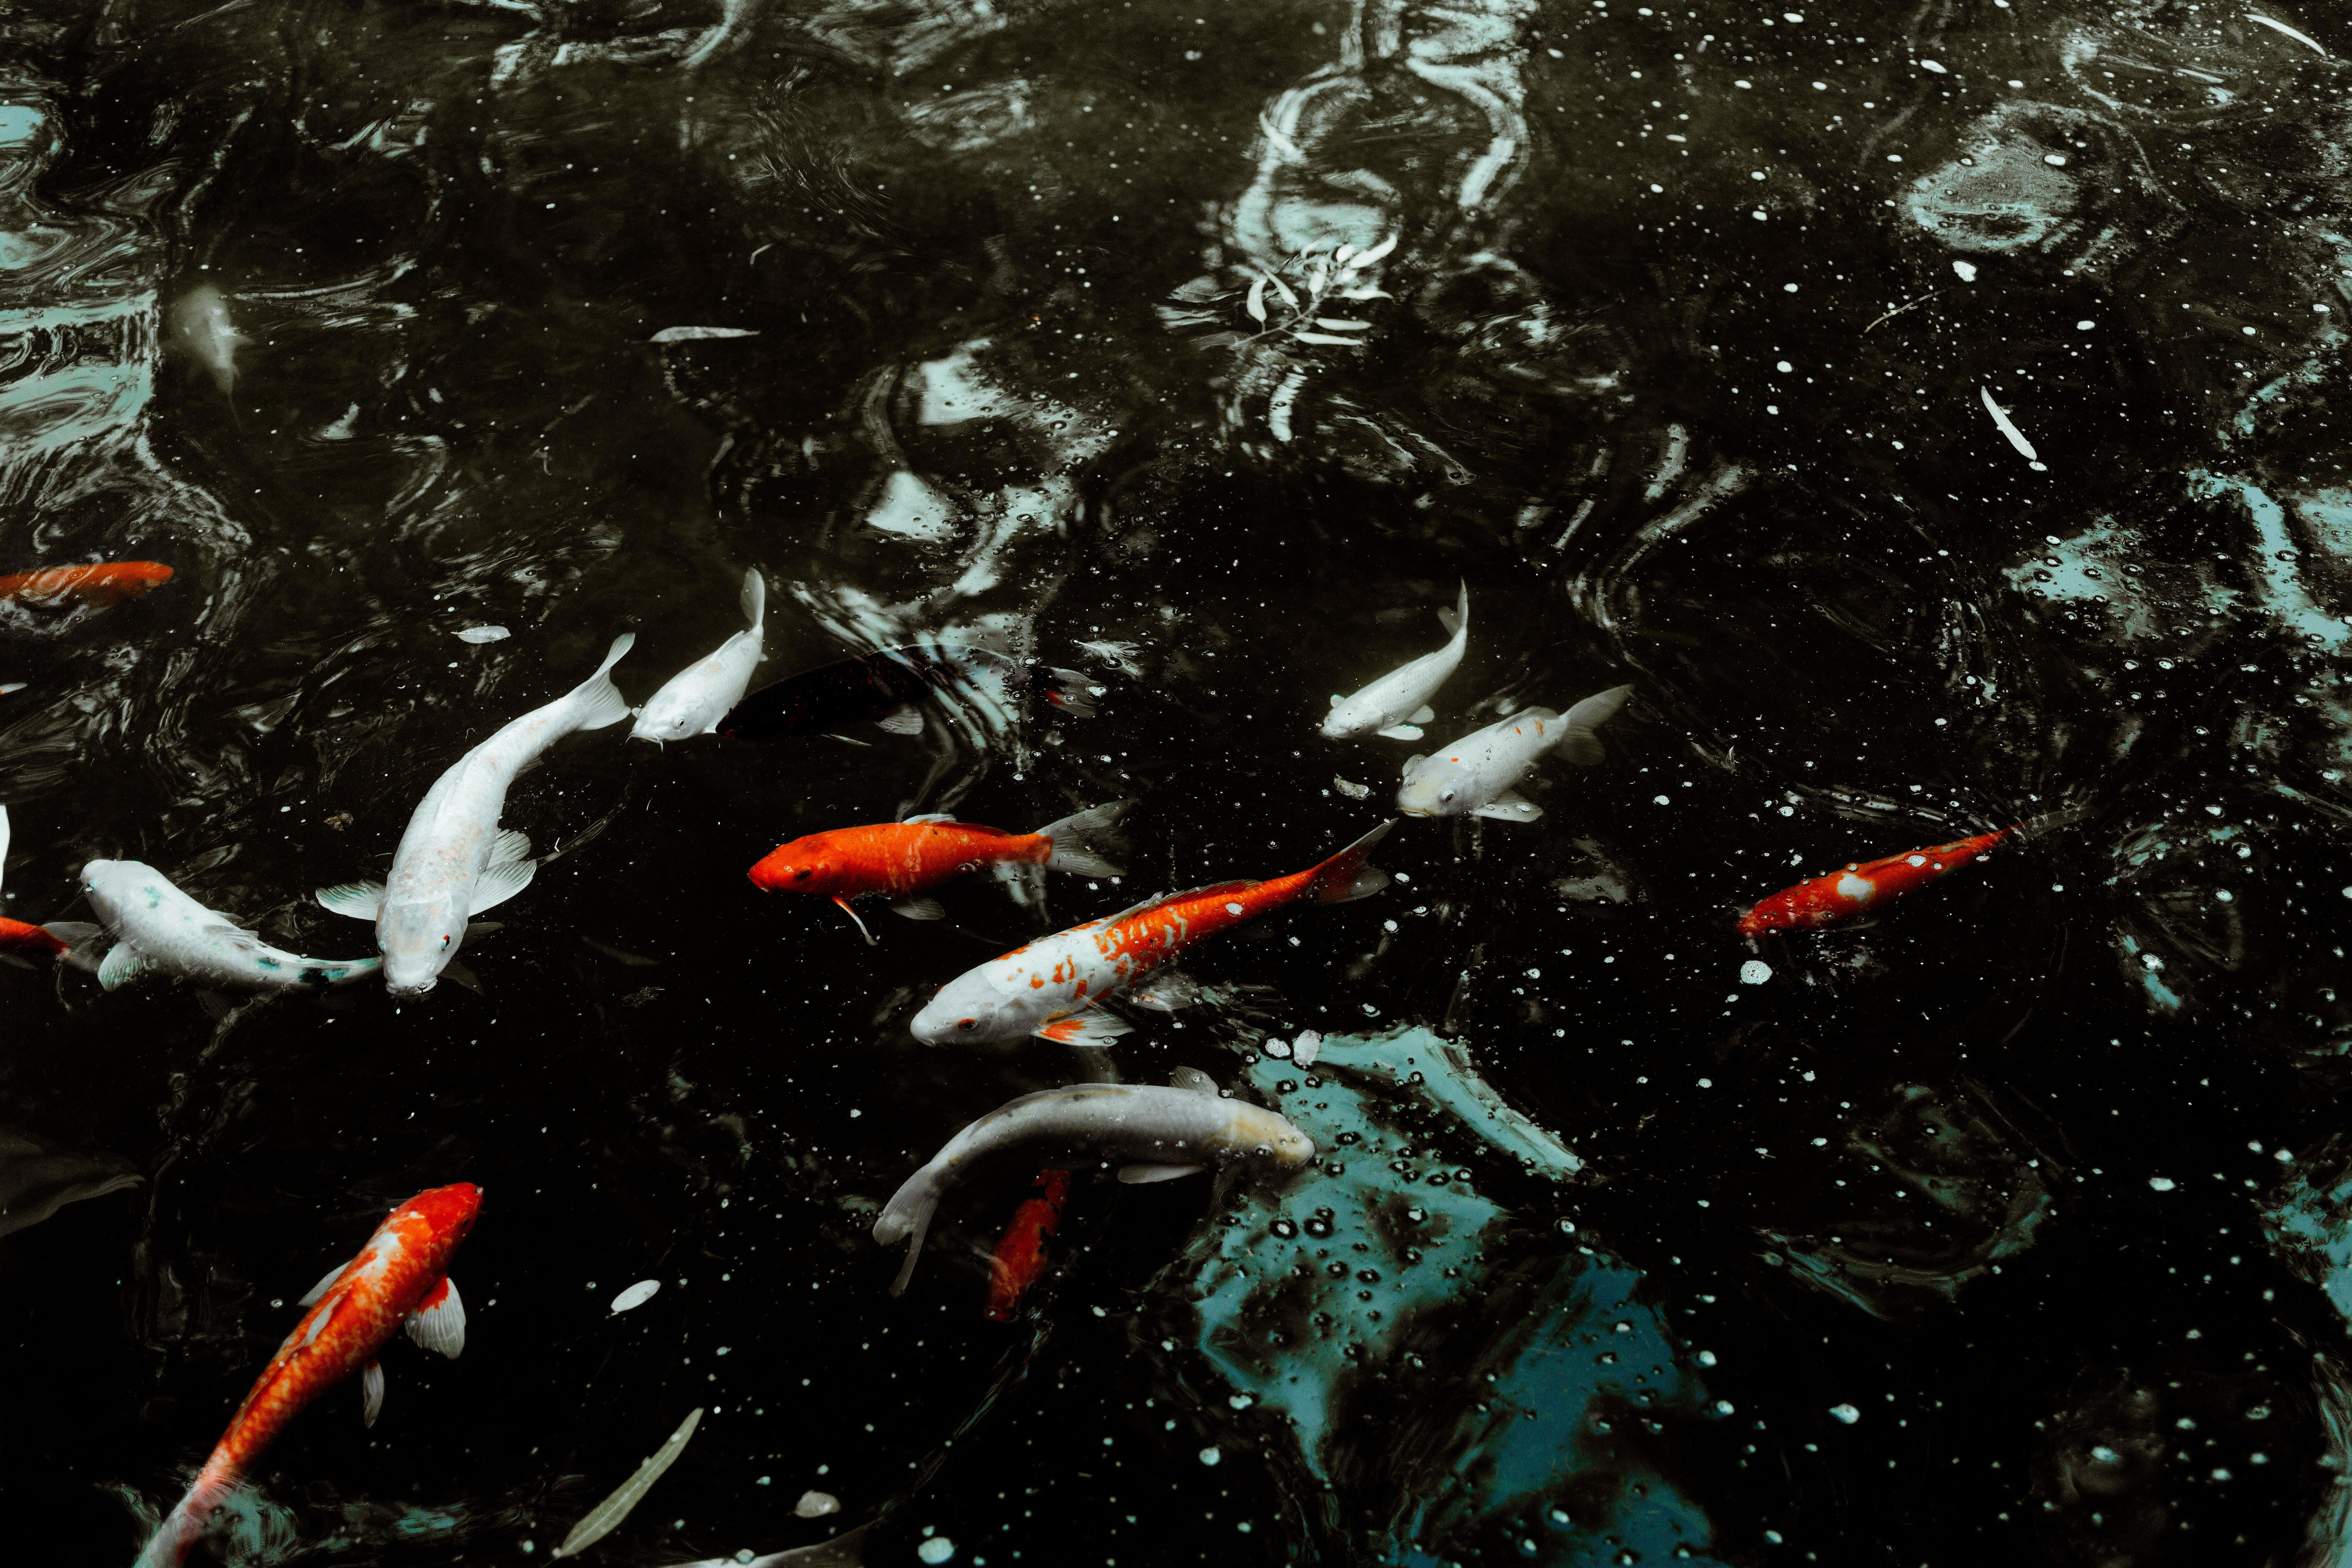 67443 download wallpaper Animals, Water, Fishes, Swimming screensavers and pictures for free